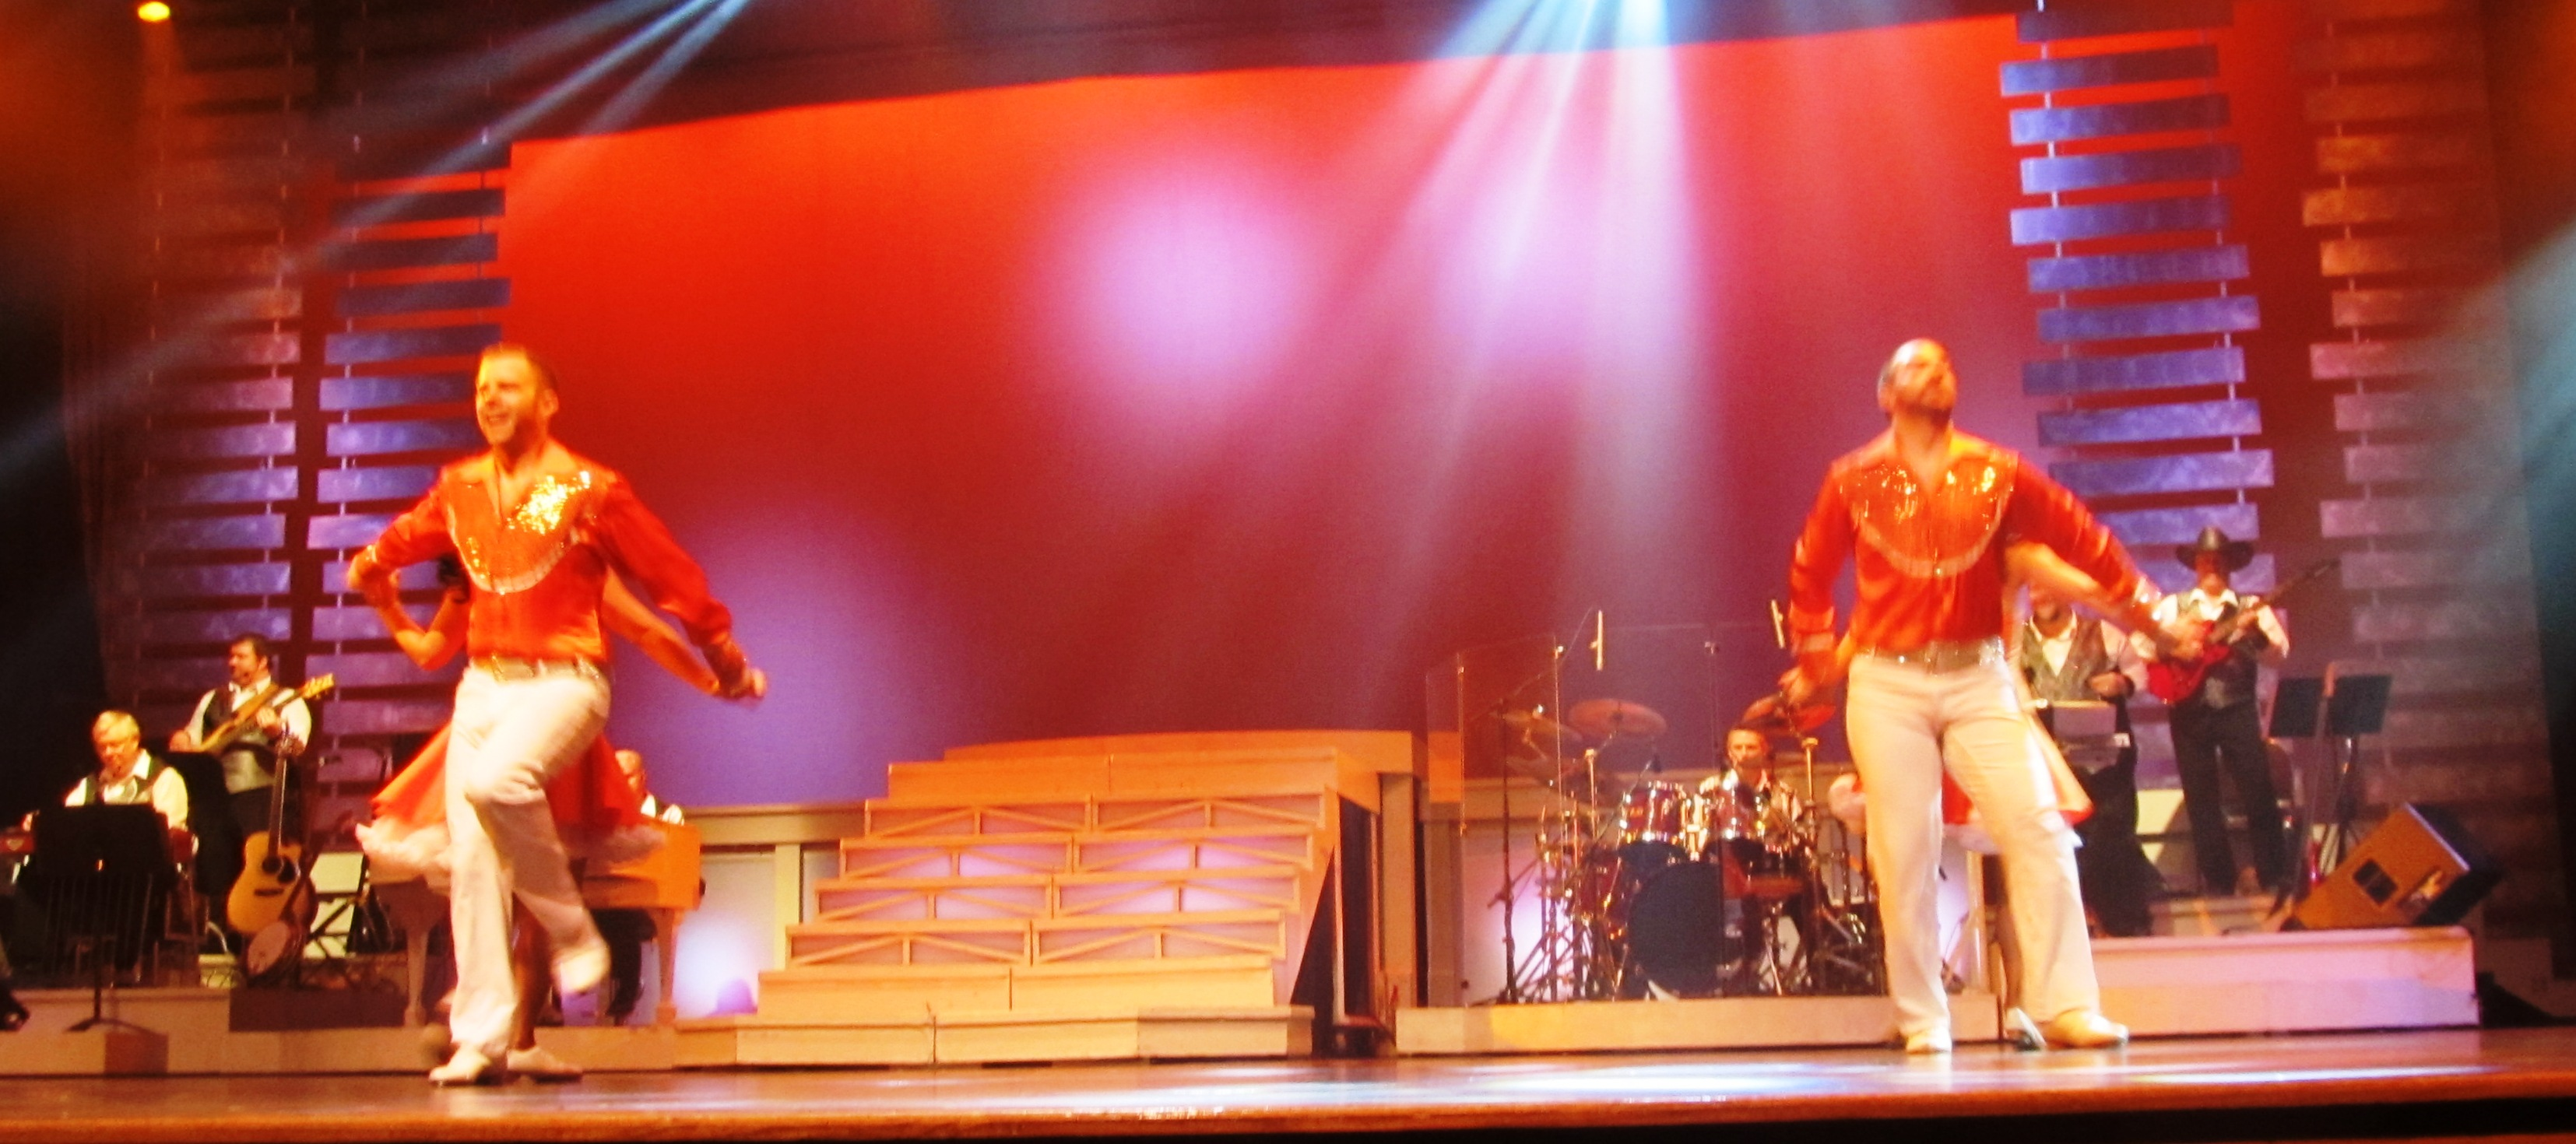 You can always find a great show in Pigeon Forge